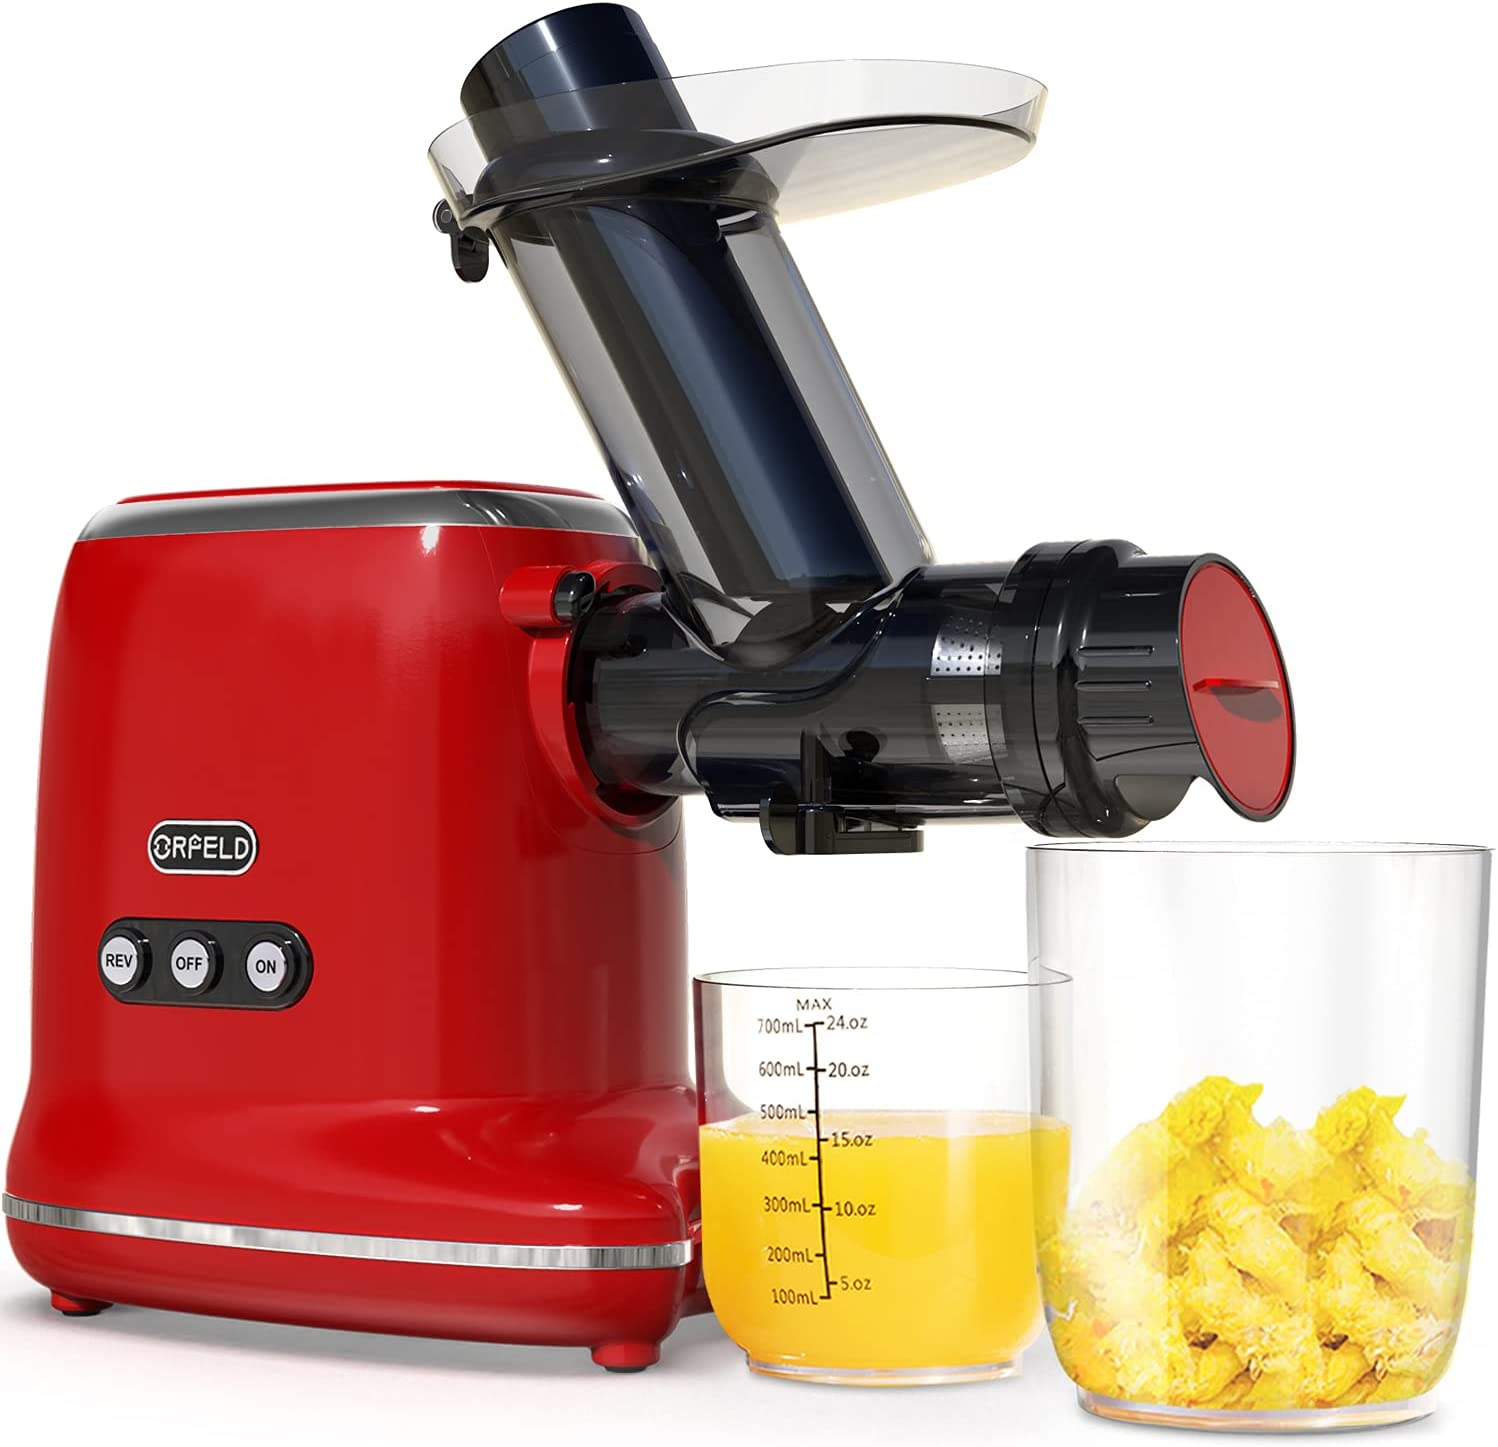 ORFELD Juicer Machines, Slow Masticating Juicer Extractor Easy to Clean, Quiet Motor & Reverse Function, Cold Press Juicer with Brush, Juice Recipes for Vegetables and Fruits, Classic Black